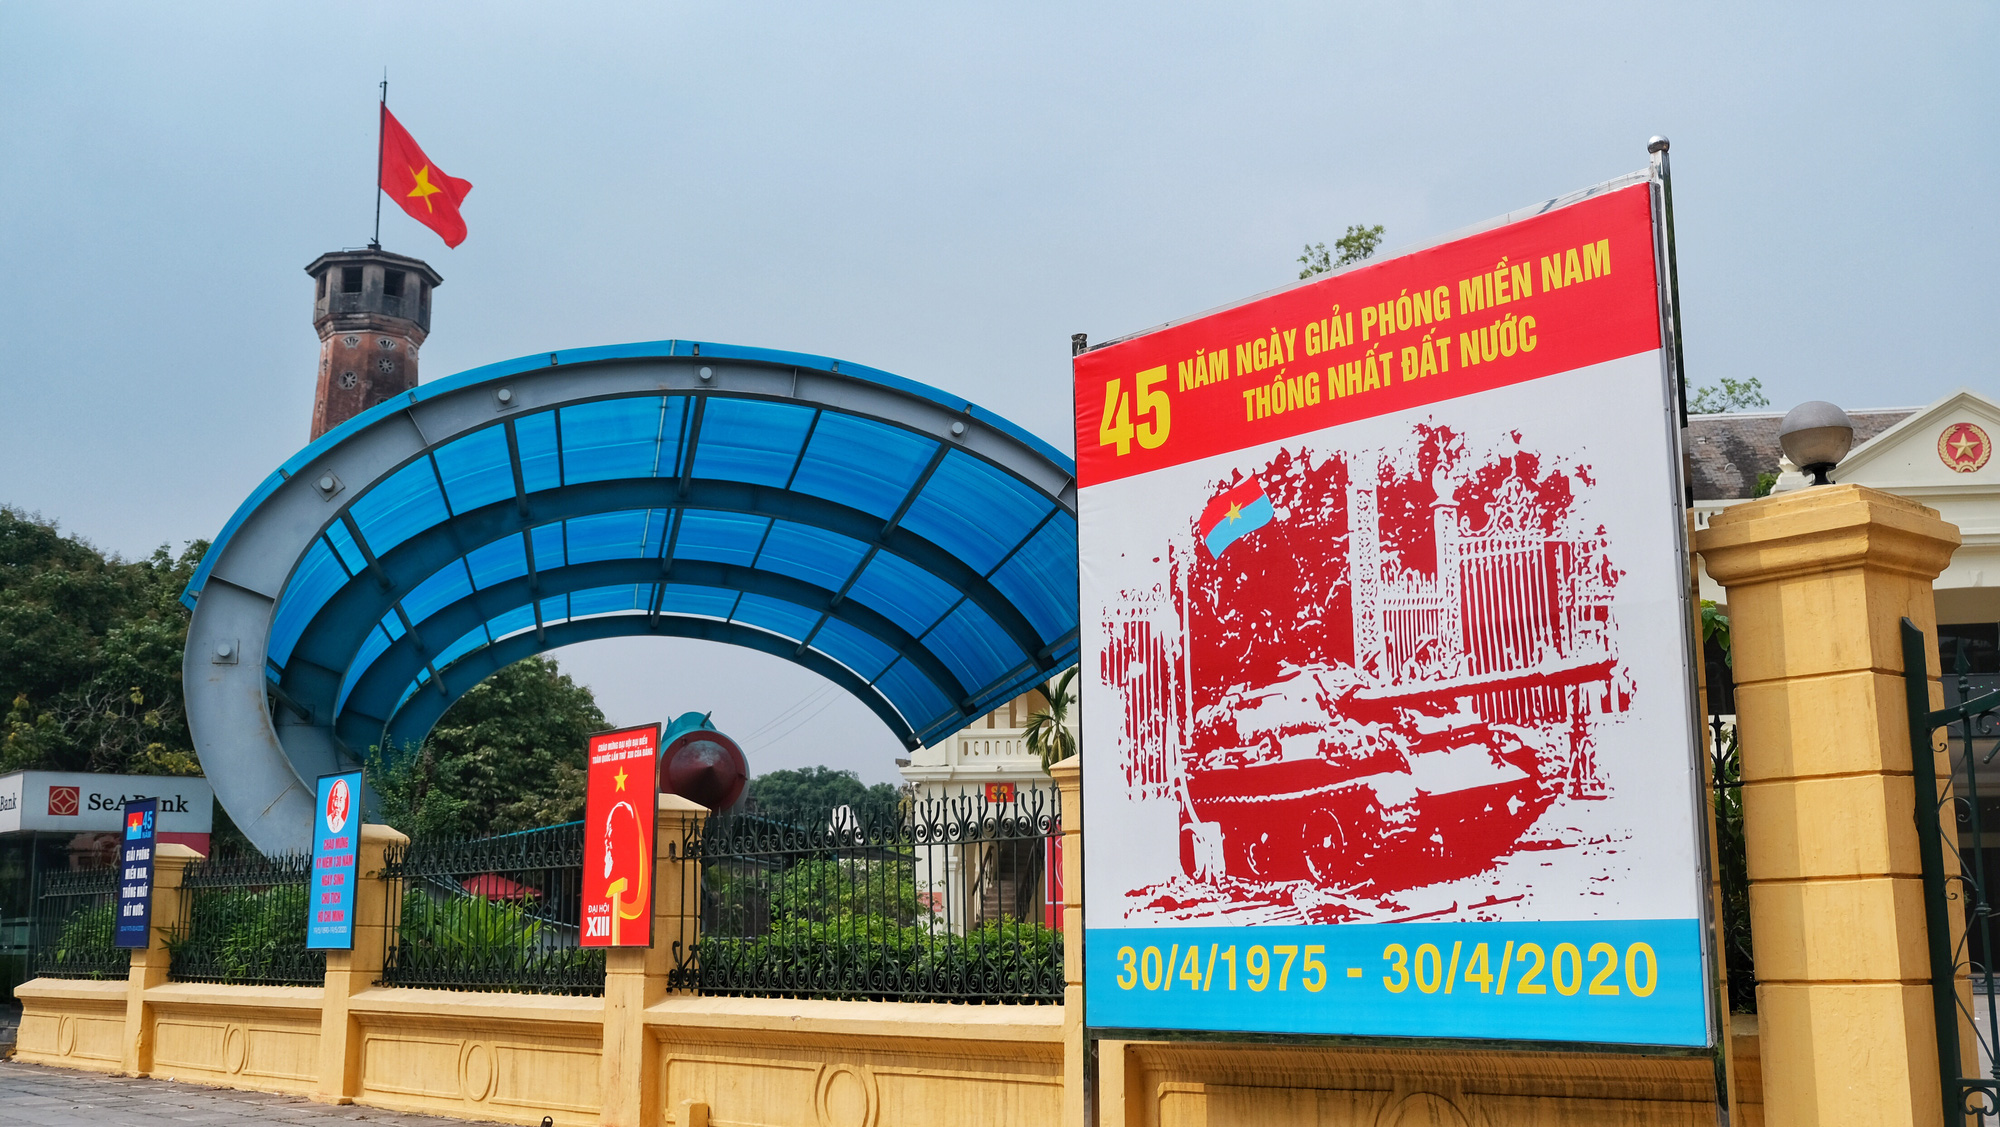 A poster marking the 45th anniversary of Vietnam's National Day on April 30, 2020. Photo: Mai Thuong / Tuoi Tre